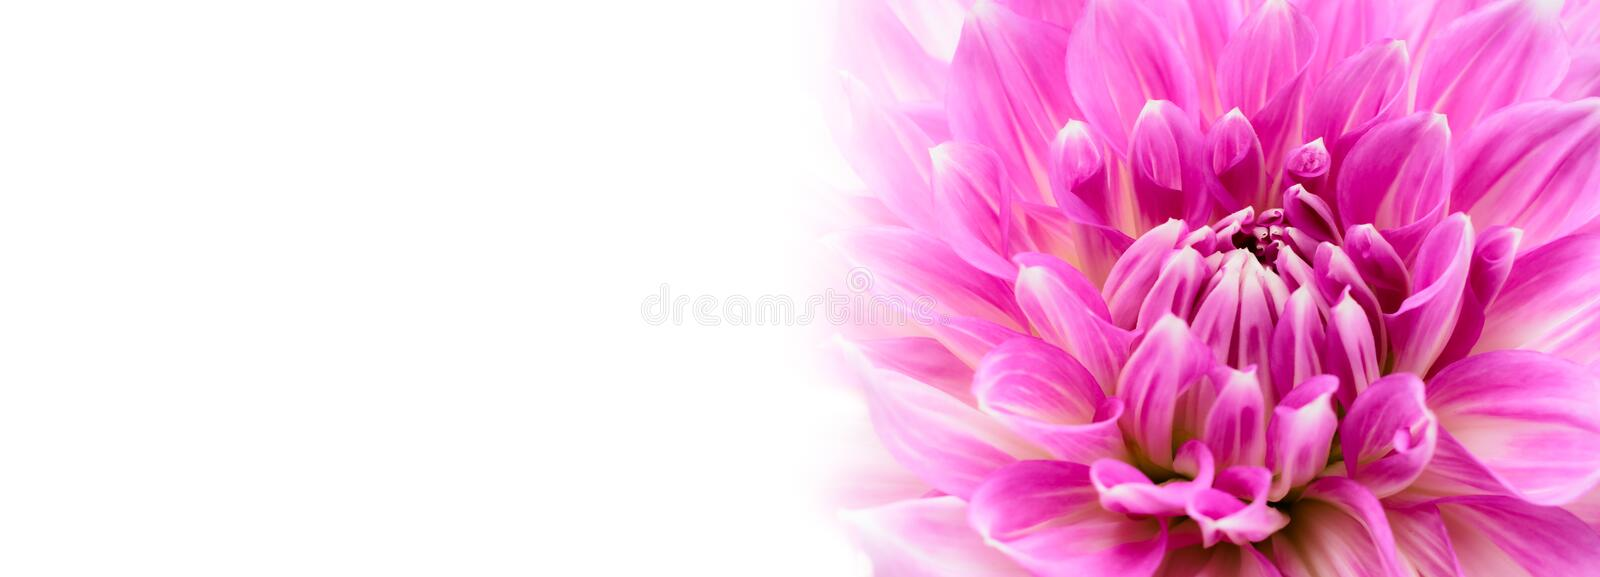 White and purple pink colourful dahlia flower macro photo with intense vivid colors in white wide banner empty background panorama stock image